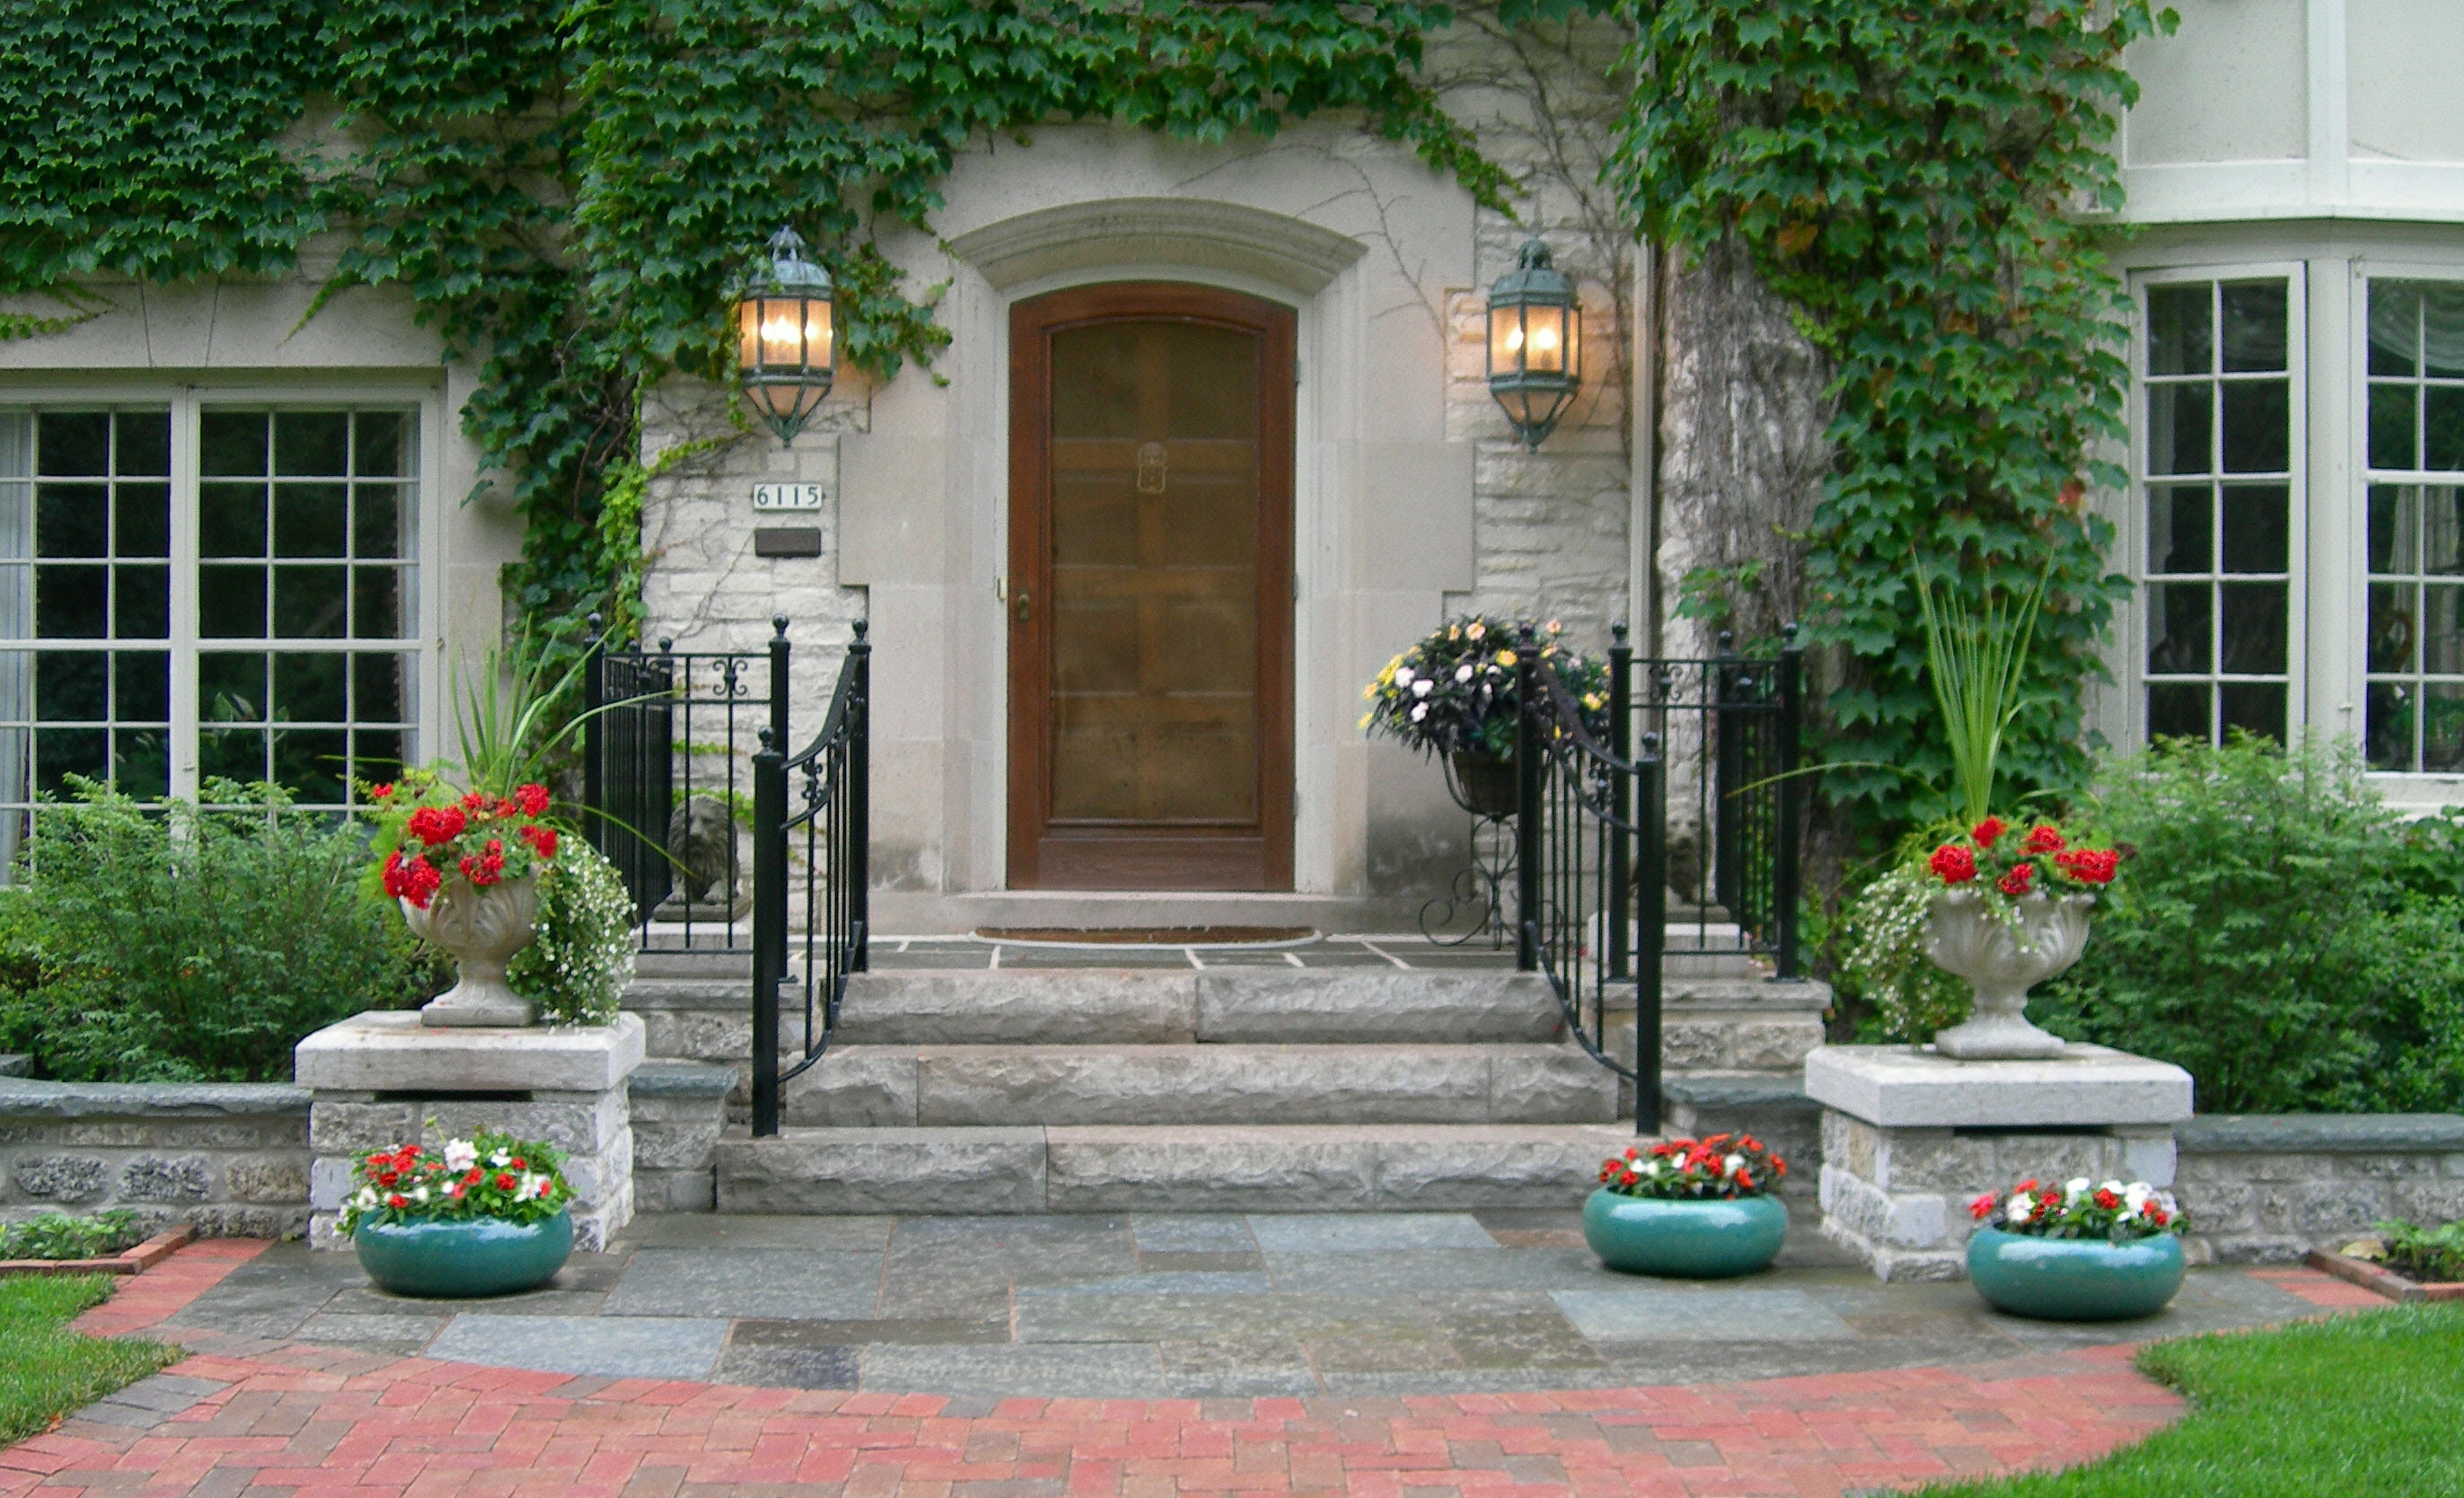 Exterior Landscaping: Creating An Enchanting Front Entry With Architectural